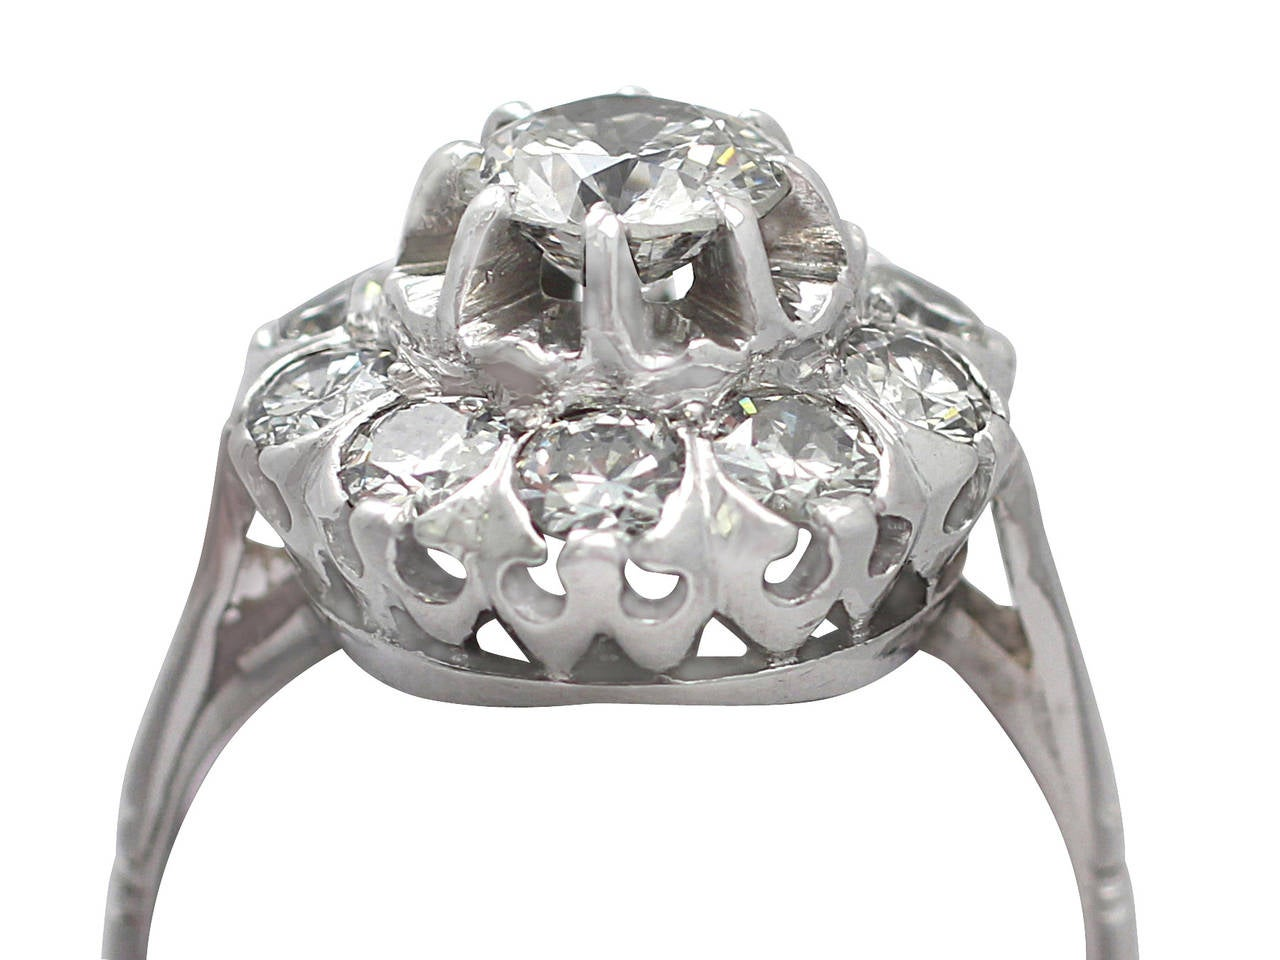 1.35Ct Diamond and 18k White Gold Cluster Ring - Vintage Circa 1950 In Excellent Condition For Sale In Jesmond, GB